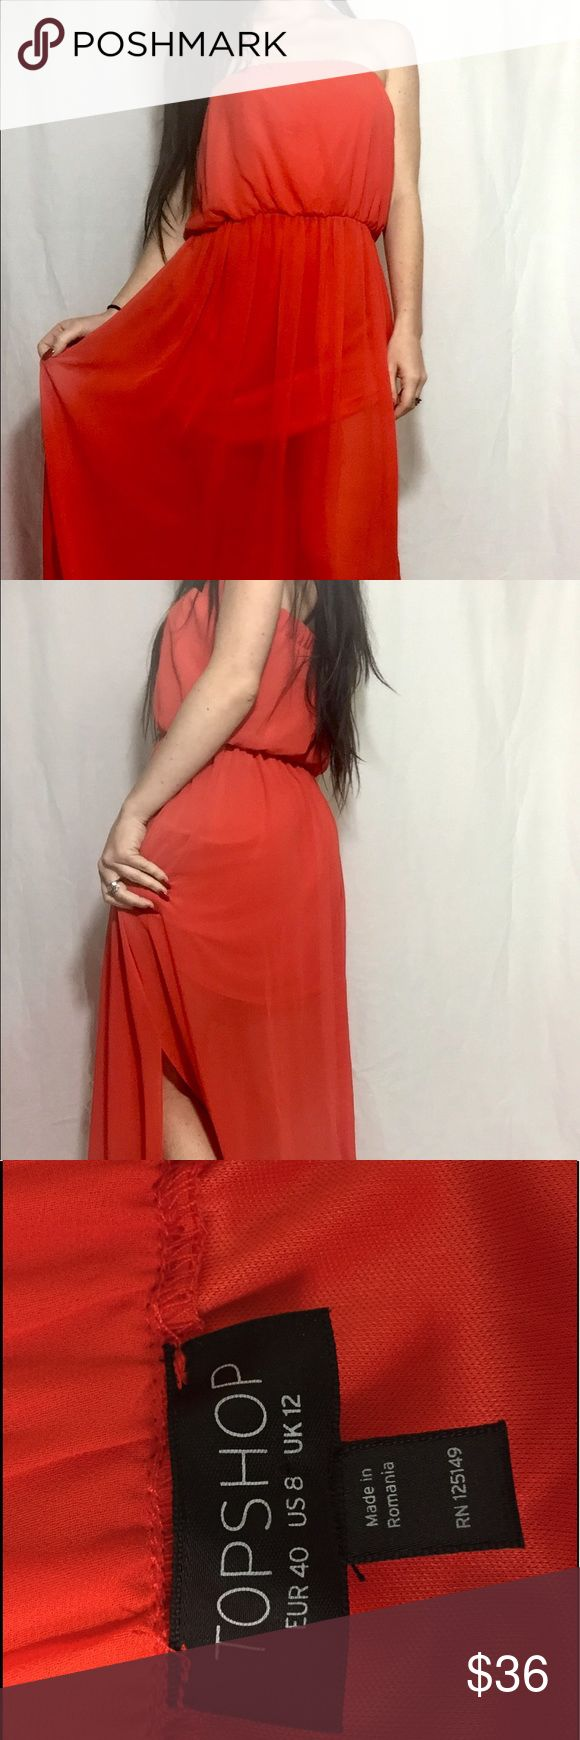 Topshop Dress This dress is amazing! It's the most amazing color, kind of a coral/red. It's long (way too long for me, with a little slit on each side! It's a tube top style dress! Dresses Strapless